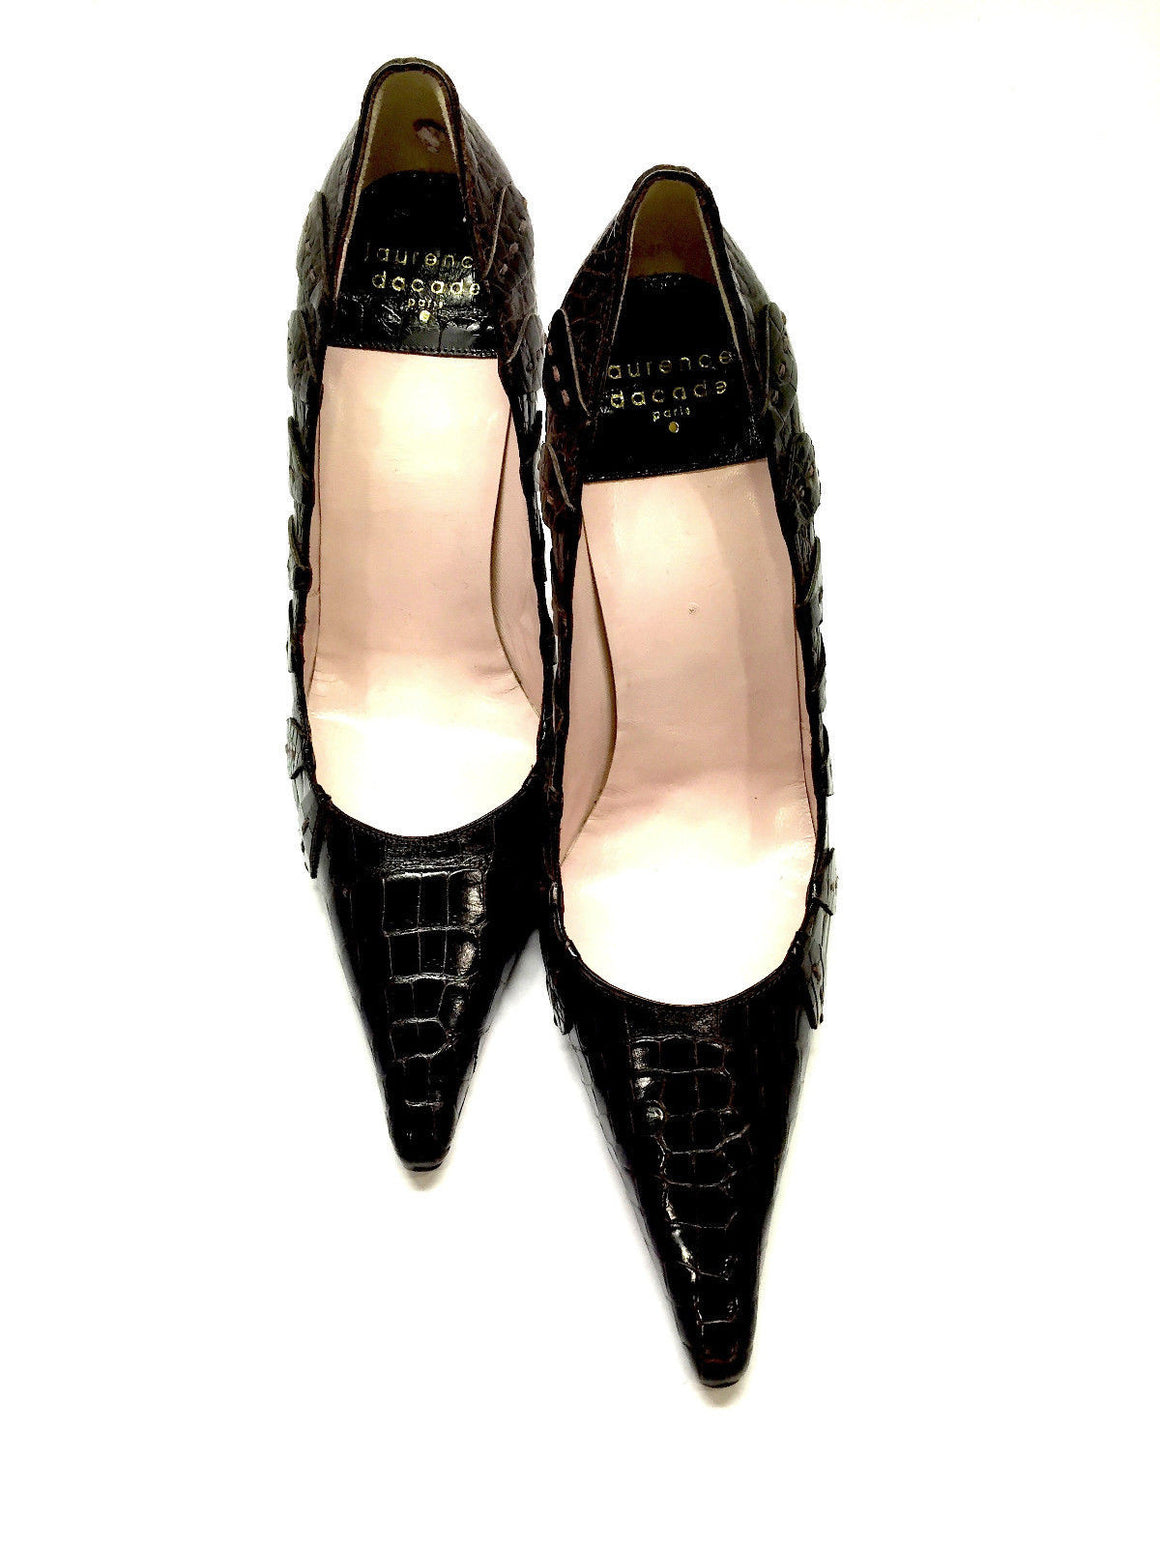 bisbiz.com LAURENCE DACADE  Paris  Brown Alligator Pointed-Toe  Classic Heel Pumps Shoes  Size: 37 / 7 - Bis Luxury Resale